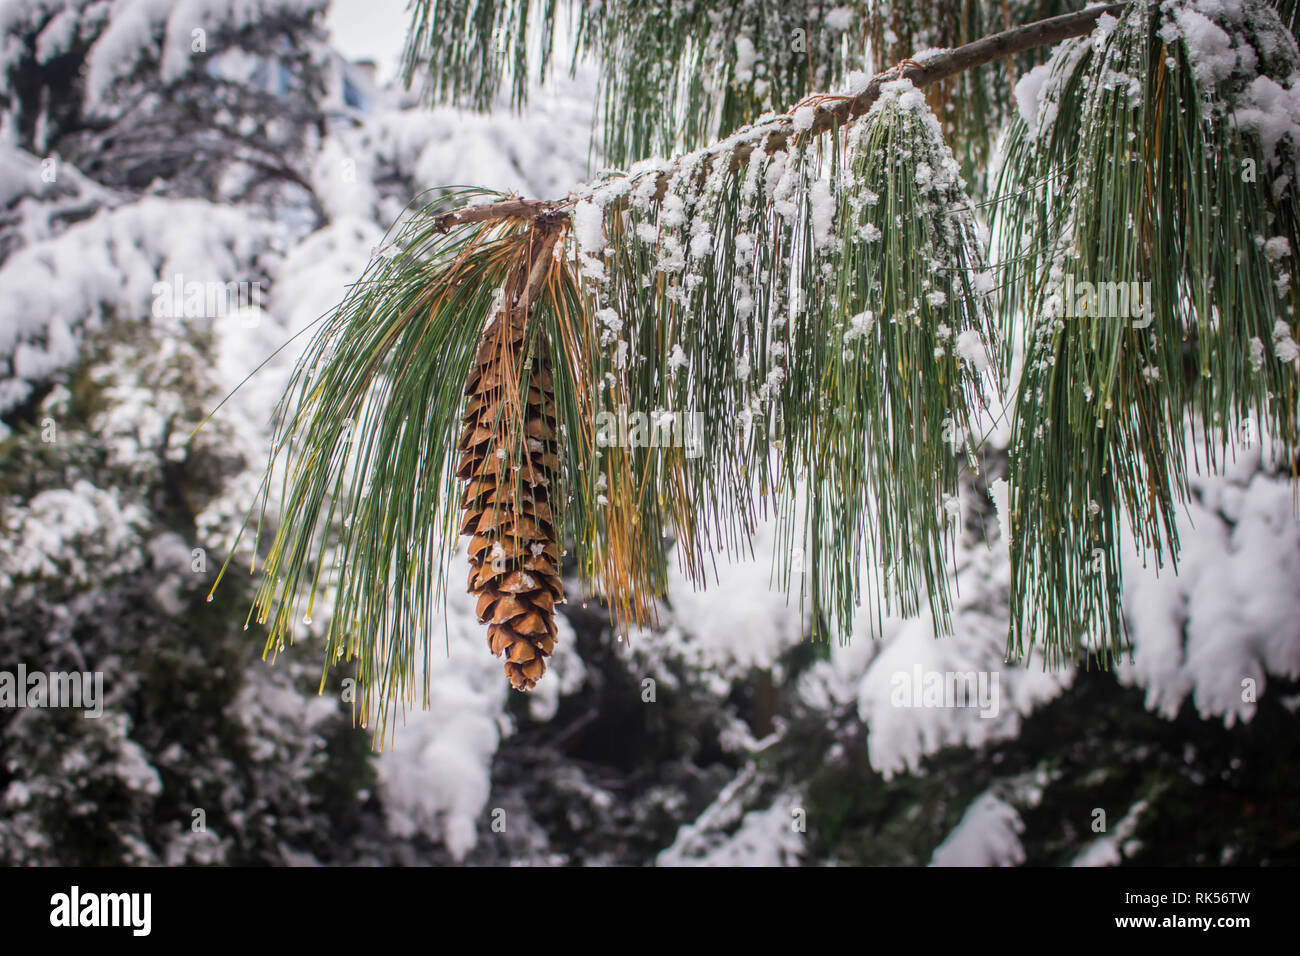 Mature brown cone of the Bhutan pine - latin name Pinus wallichiana covered with snow in the garden in Belgrade in Serbia - Stock Image